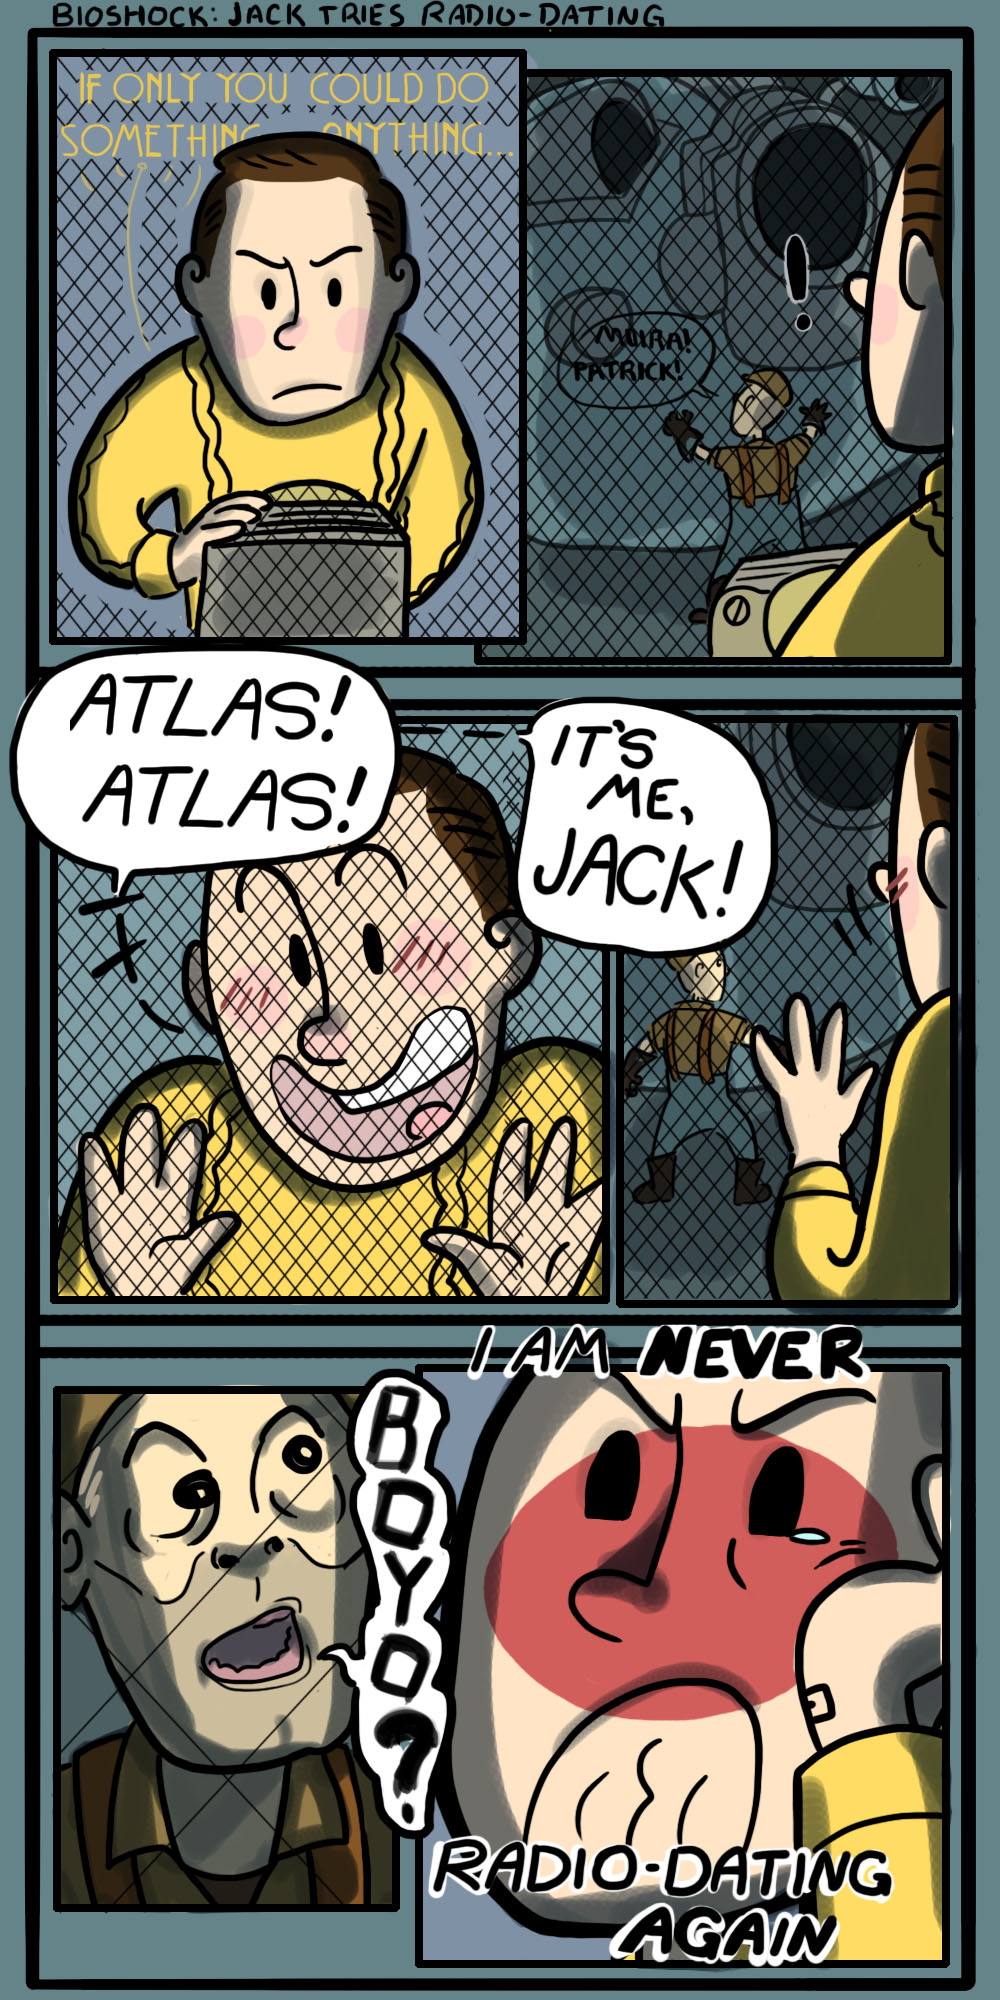 Big Sister Quotes From Little Sister Bioshock Cartoon: Jack...